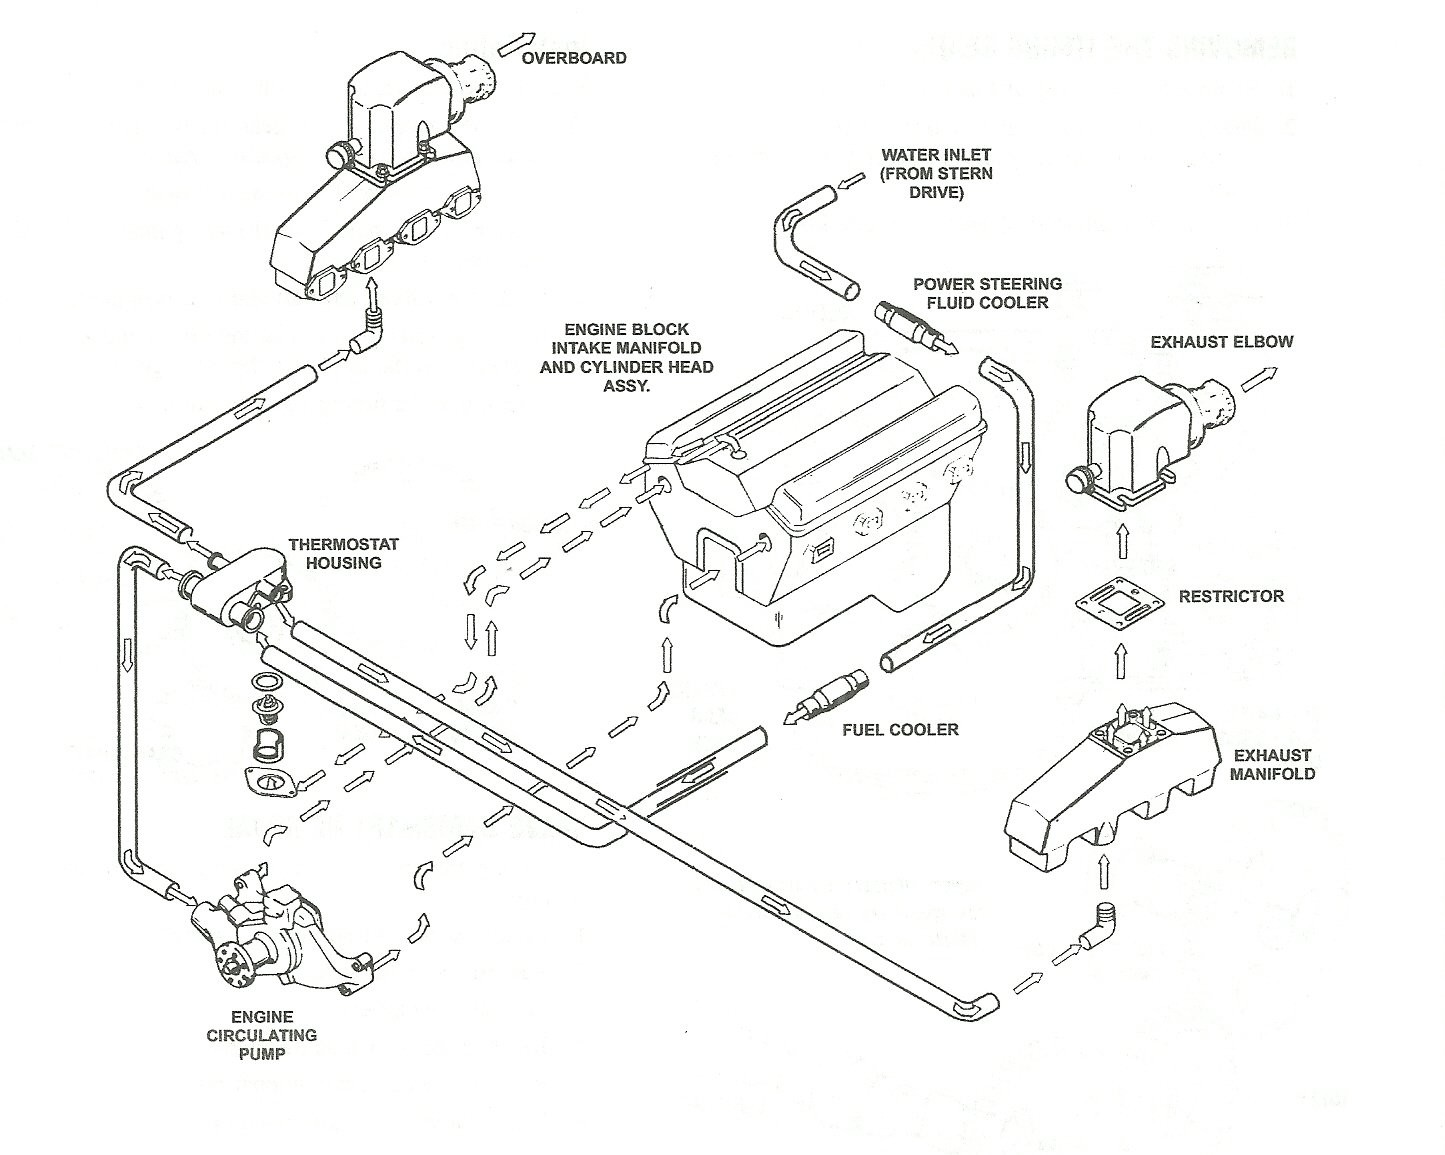 4.3 Mercruiser Cooling System Diagram I Need to Know How the Sea Pick Up Water Flow Thru the Engine as Only One Elbow is Cooled but Of 4.3 Mercruiser Cooling System Diagram